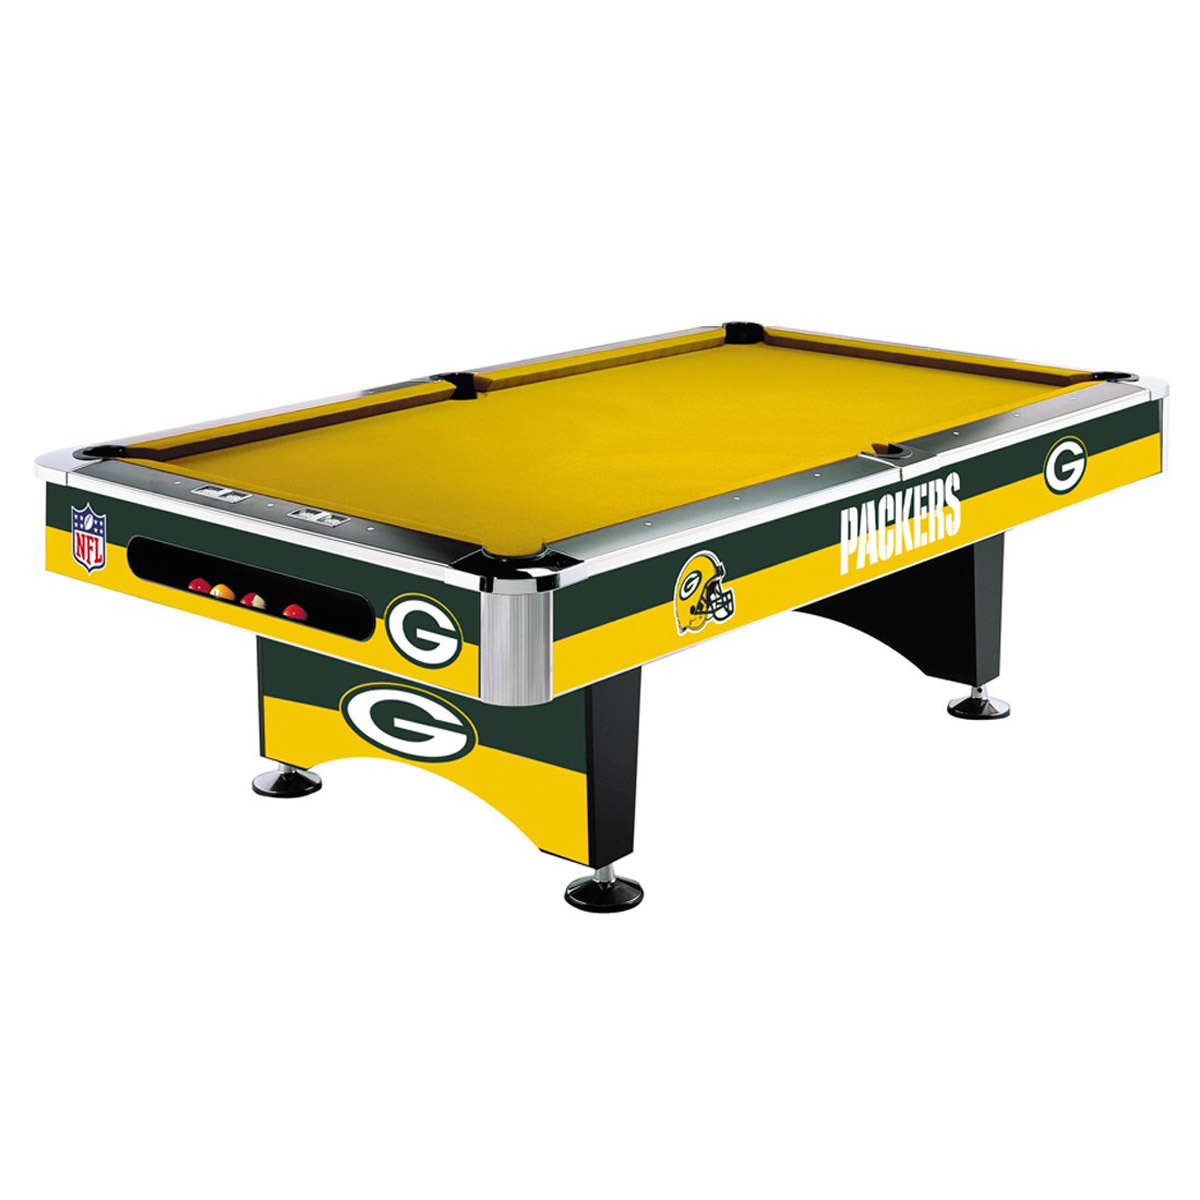 GREEN BAY PACKERS 8-FT. POOL TABLE